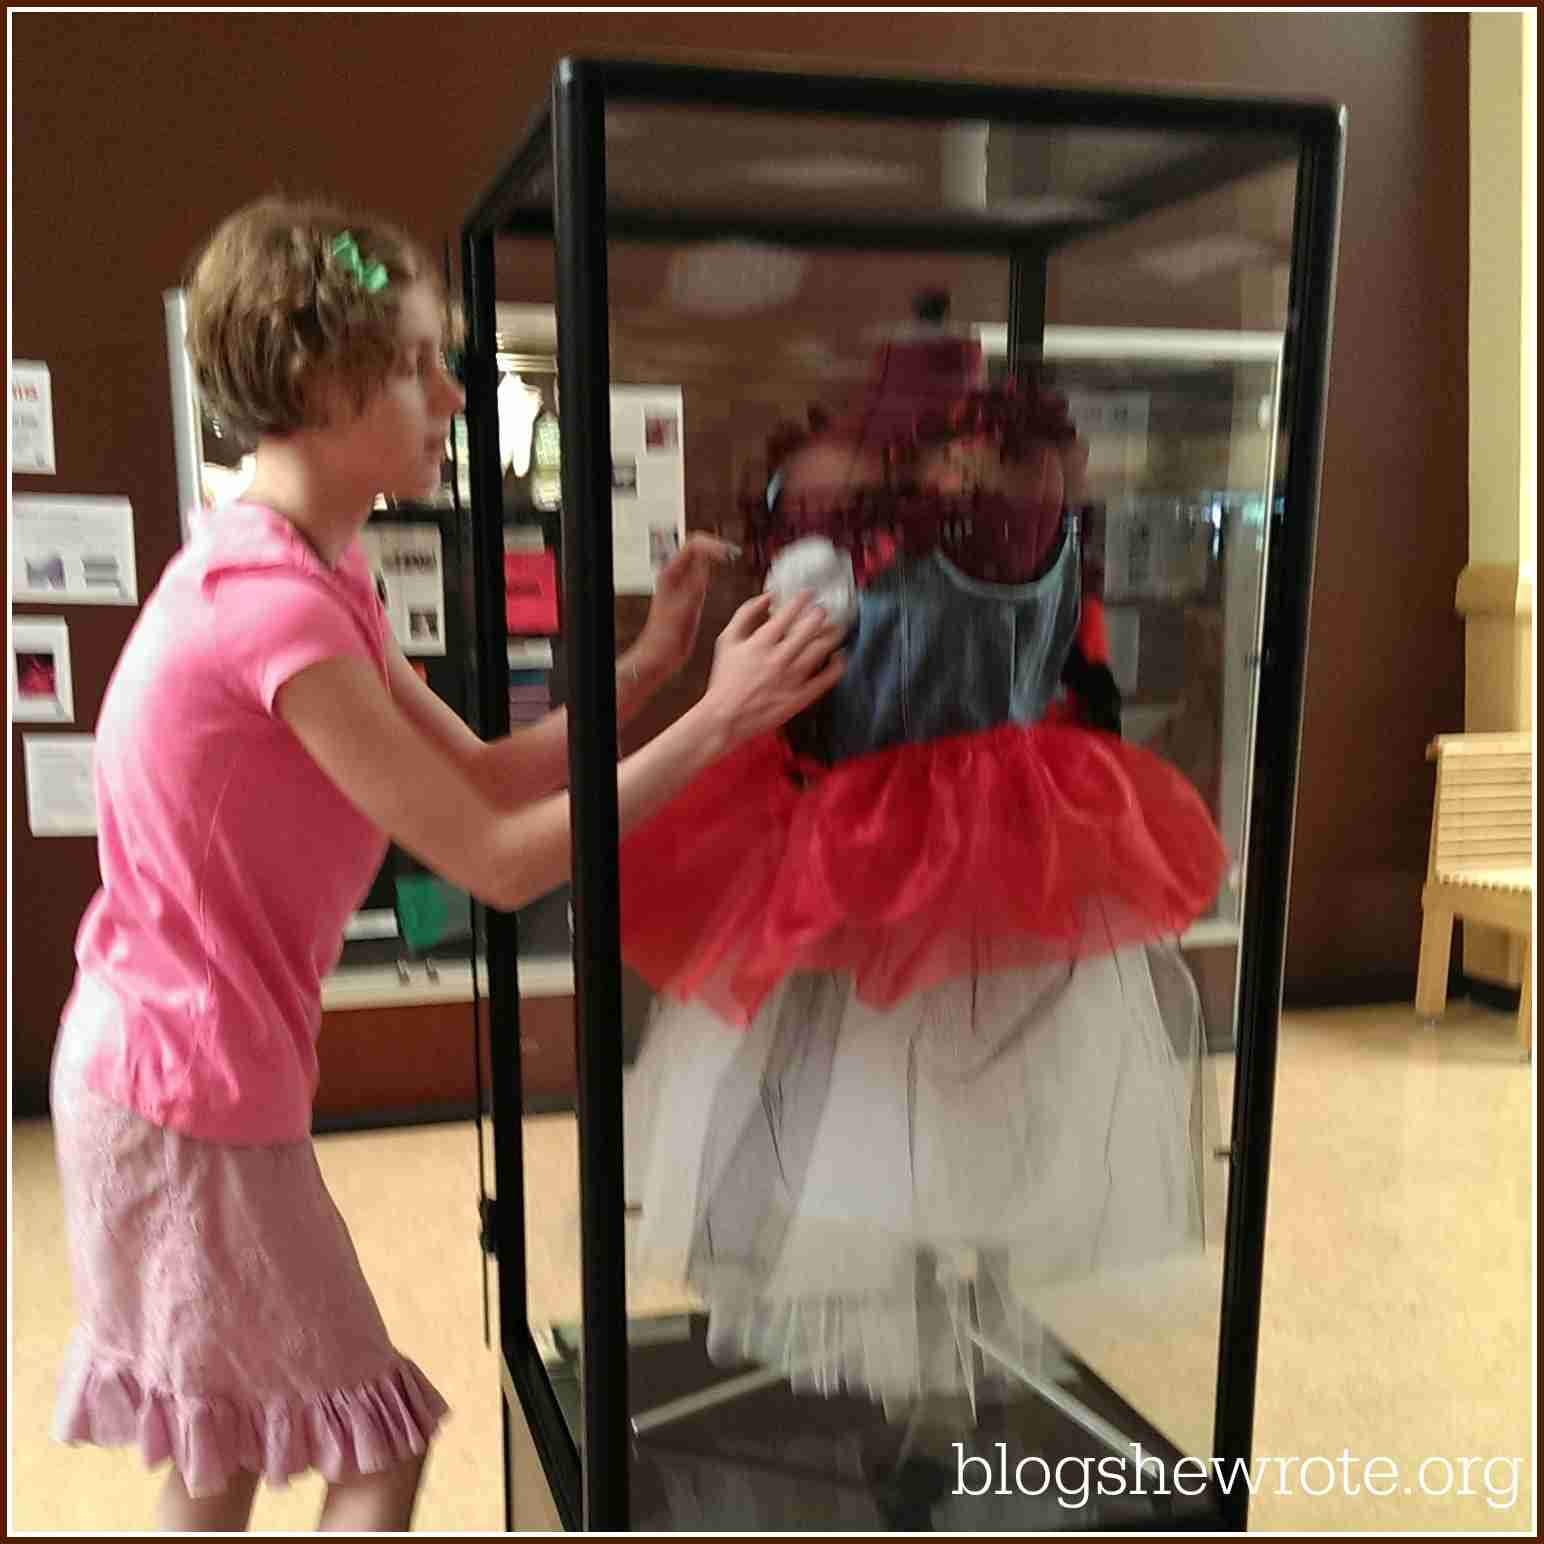 Blog, She Wrote: Sewing & Design Project Based Learning